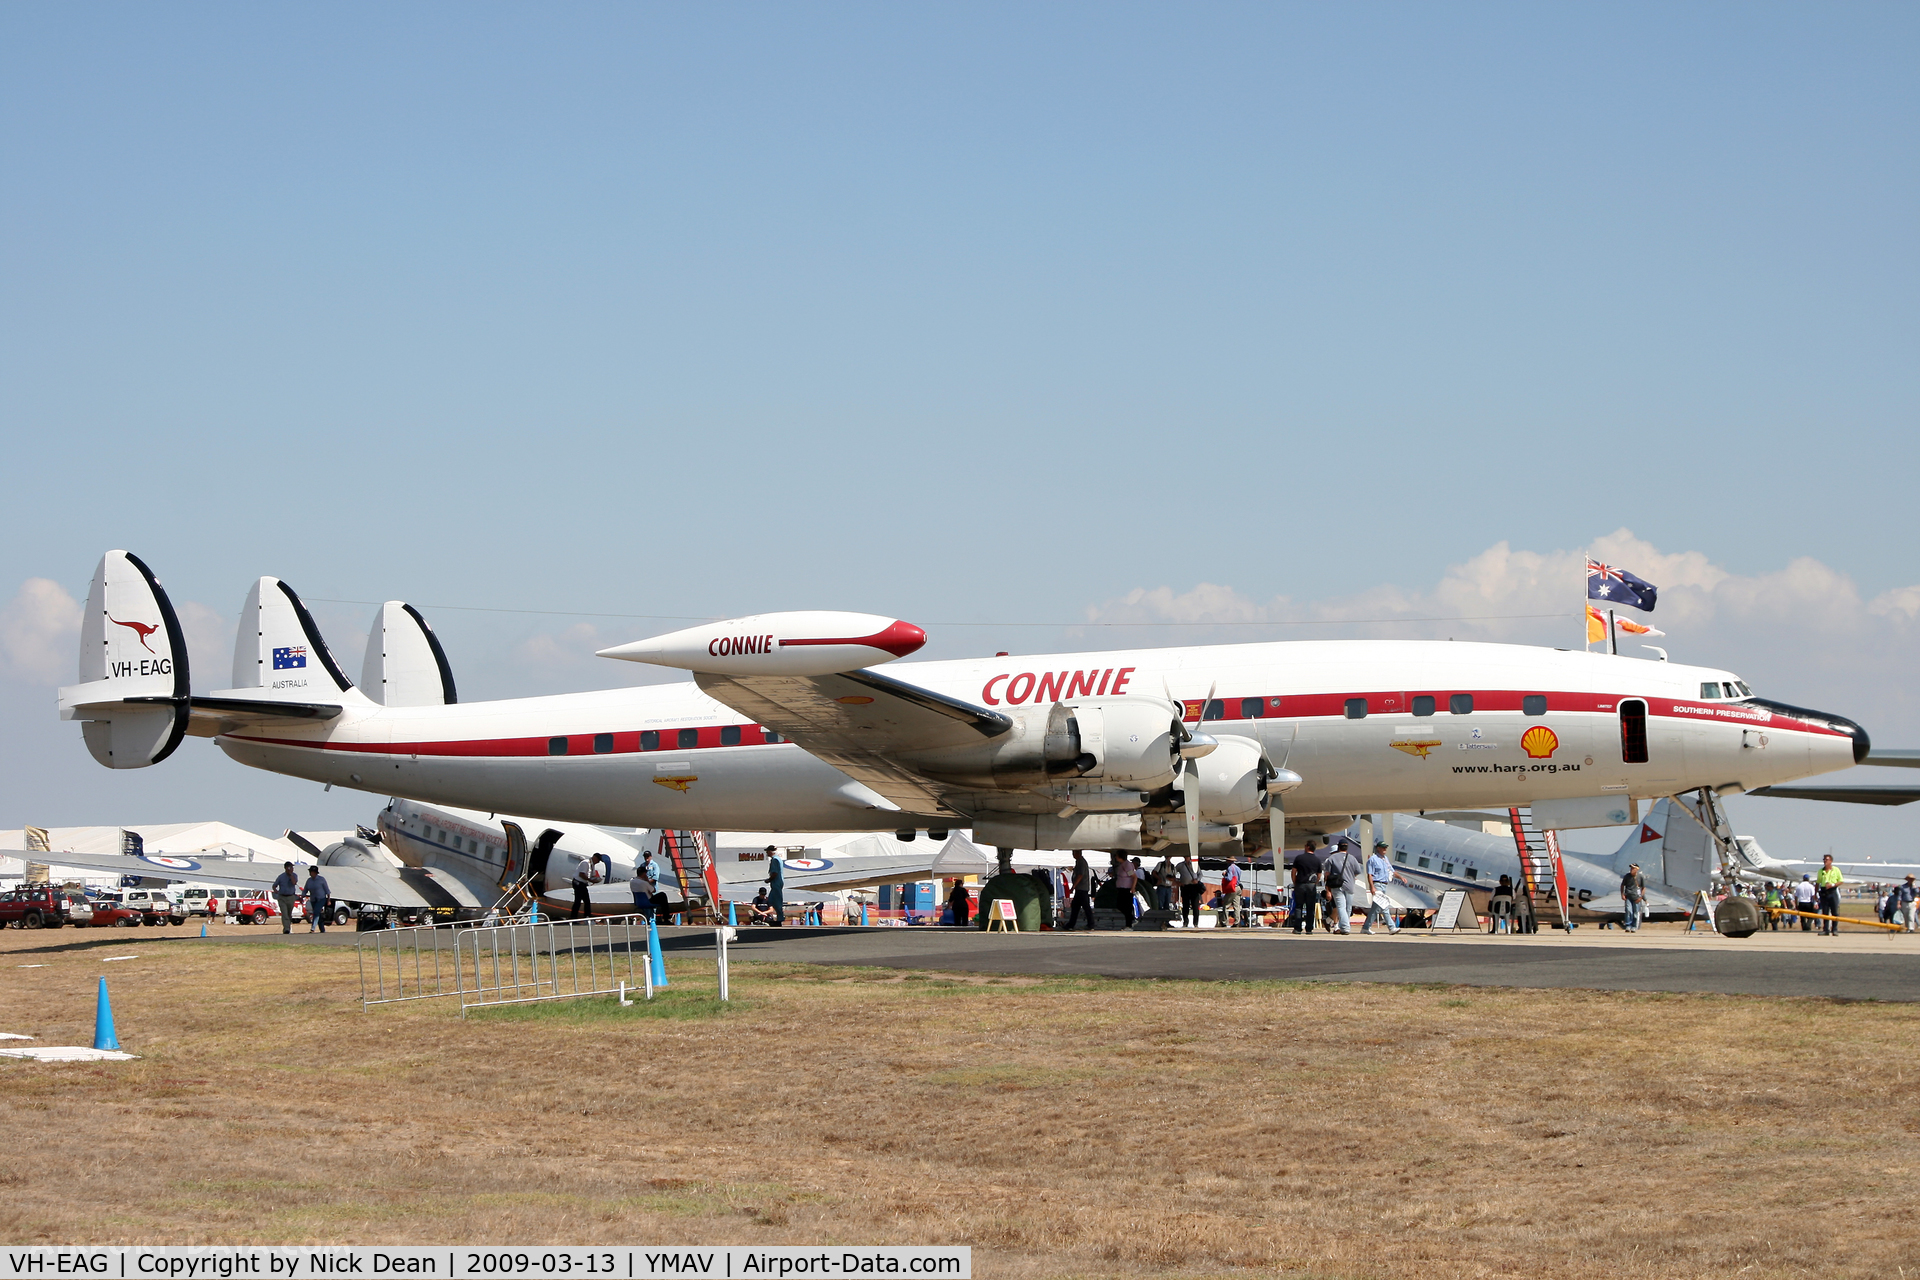 VH-EAG, 1954 Lockheed C-121C Super Constellation (L-1049F) C/N 1049F-4176, YMAV (The HARS Connie based at Wollongong NSW)